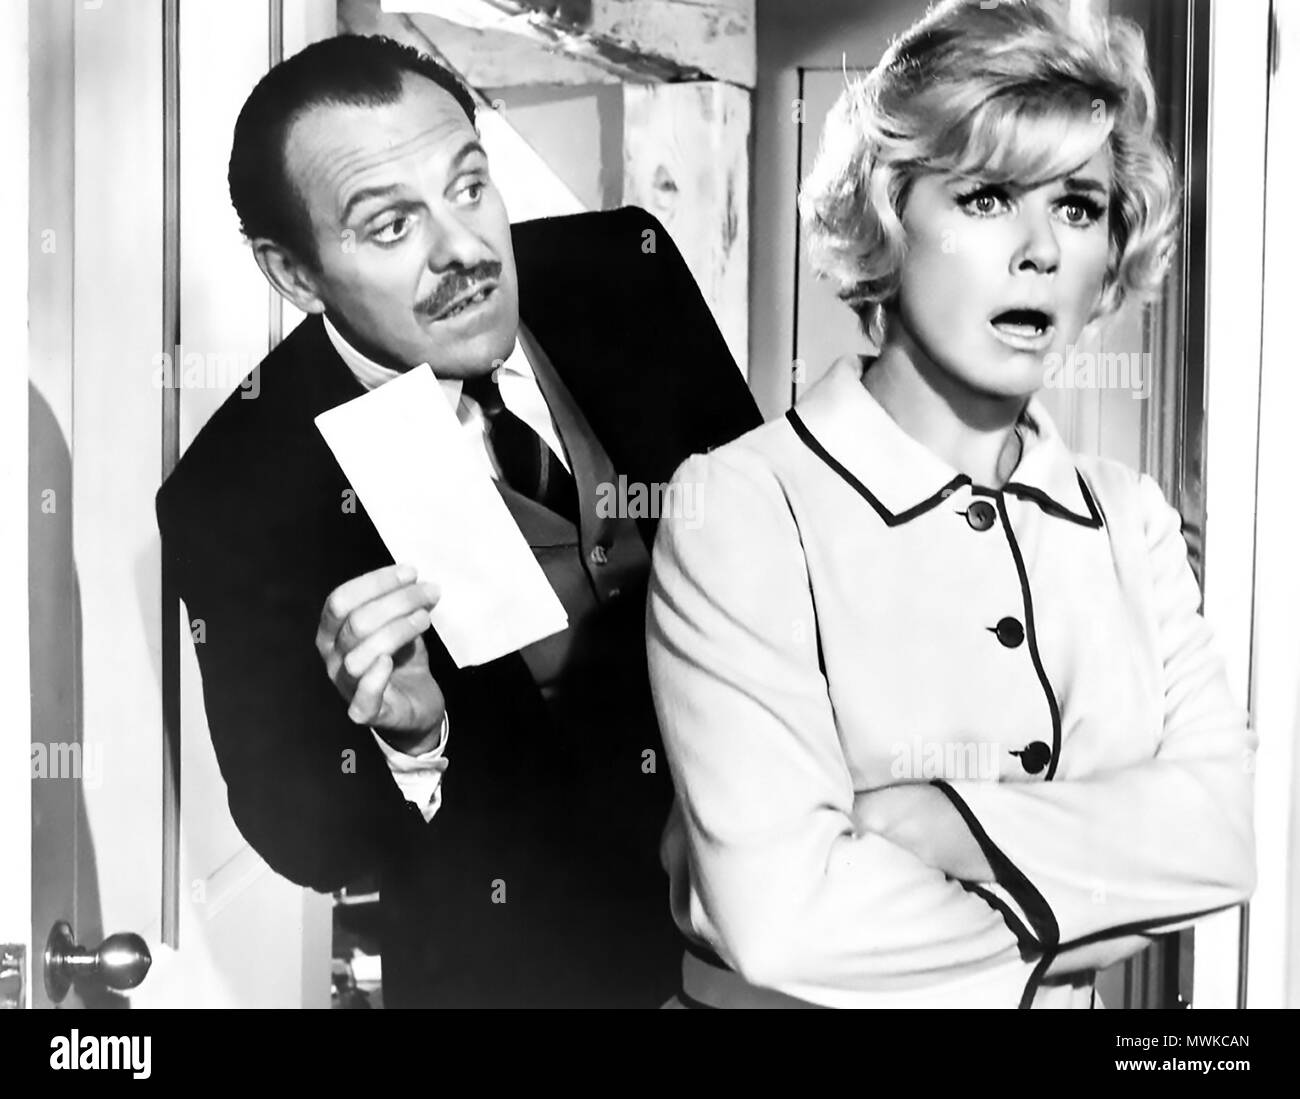 TERRY-THOMAS (1911-1990)  English character actor with Doris Day in the 1968 film Where Were You When The Lights Went Out ? - Stock Image